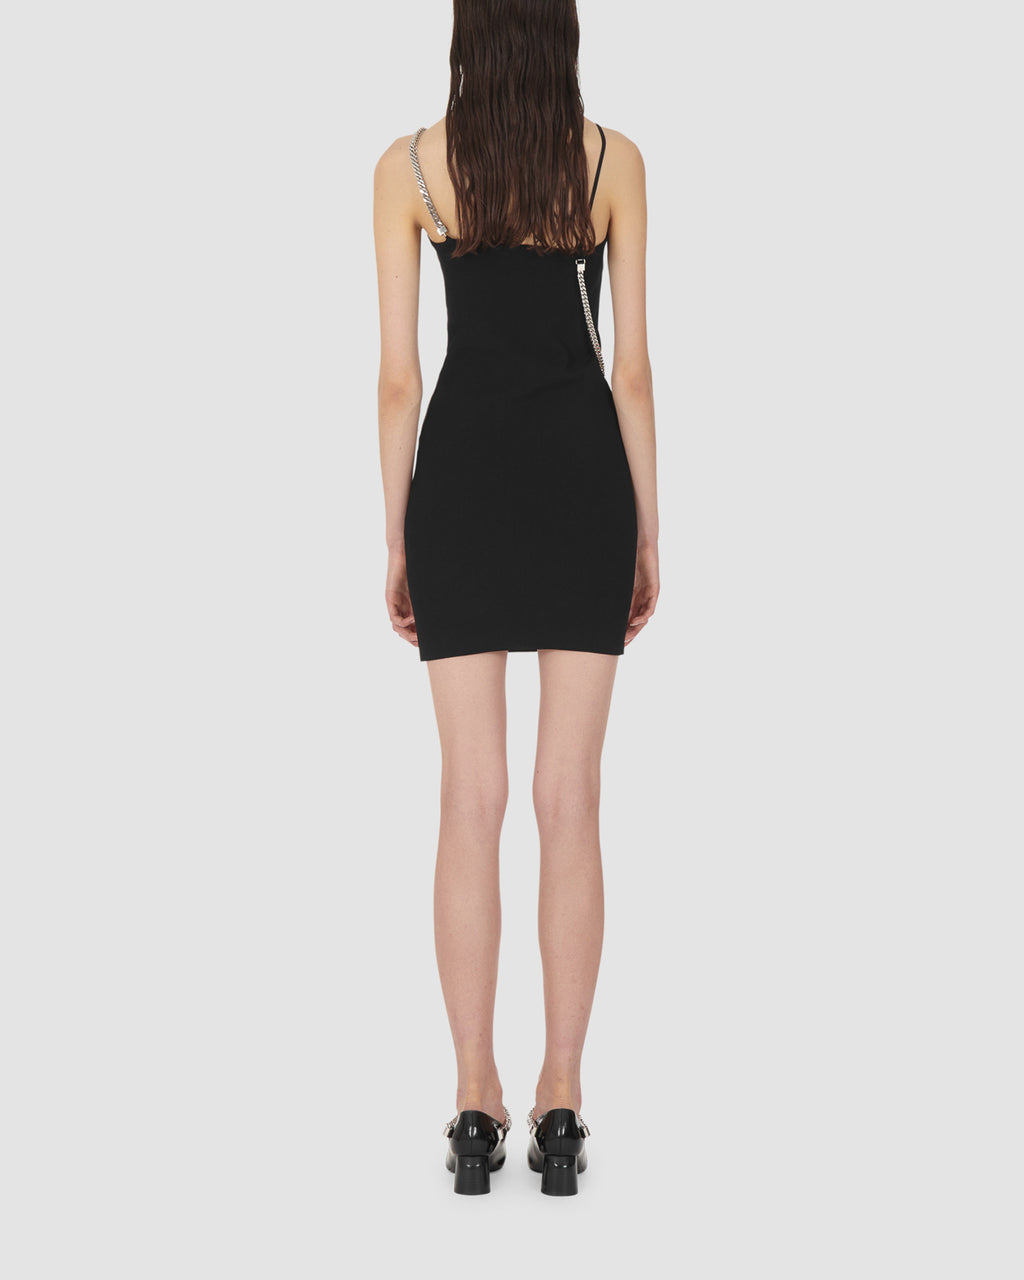 CUBIX KNIT DRESS